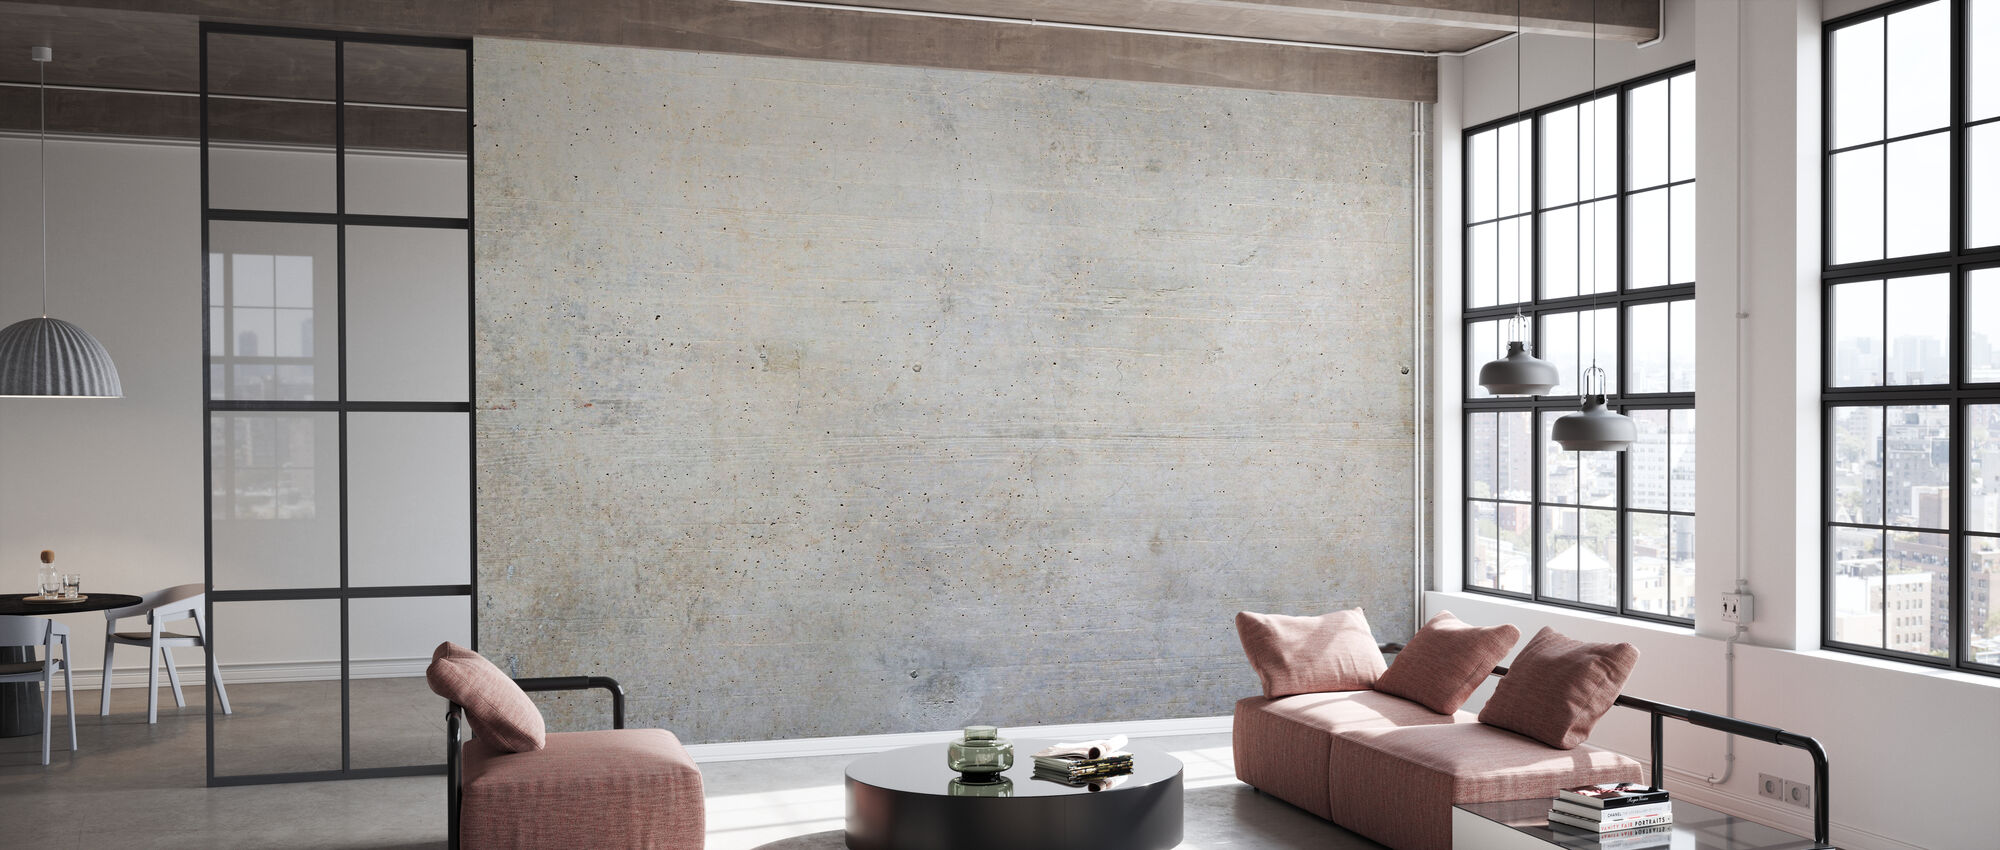 Old Concrete Wall - Wallpaper - Office